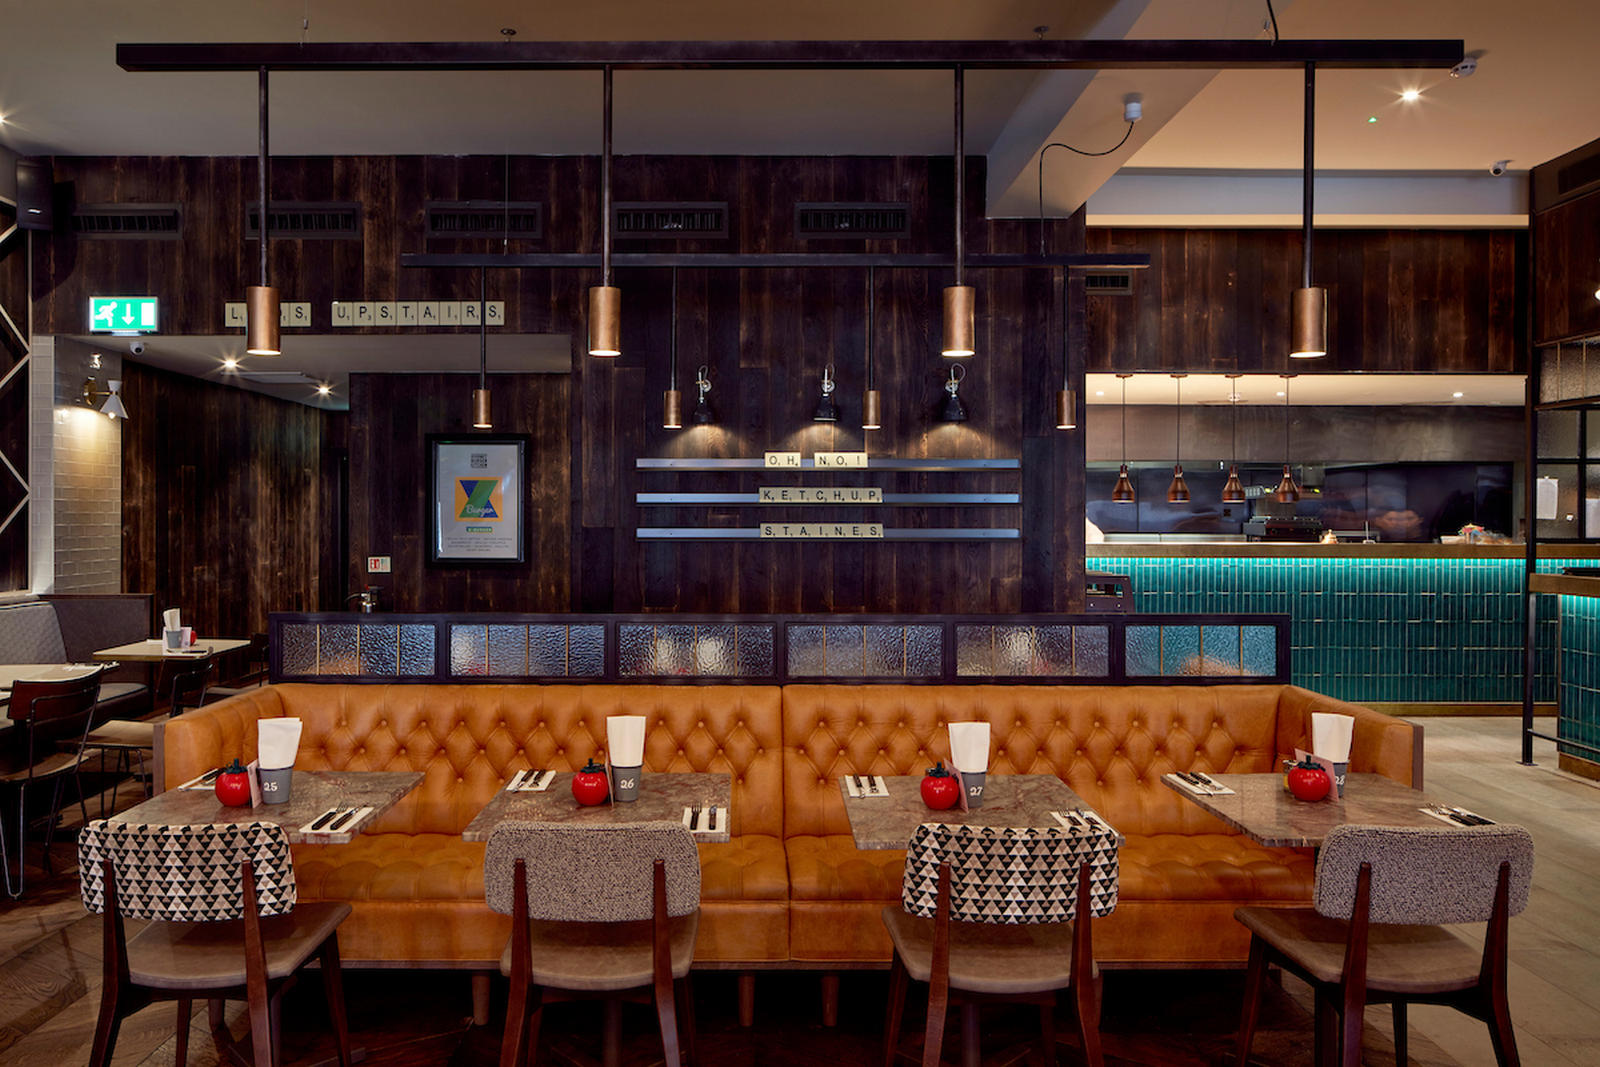 case study gourmet burger kitchen essay Gourmet burger kitchen gourmet burger kitchen coya london coya london the lodge on loch goil the lodge on loch goil brasserie chavot brasserie chavot the .